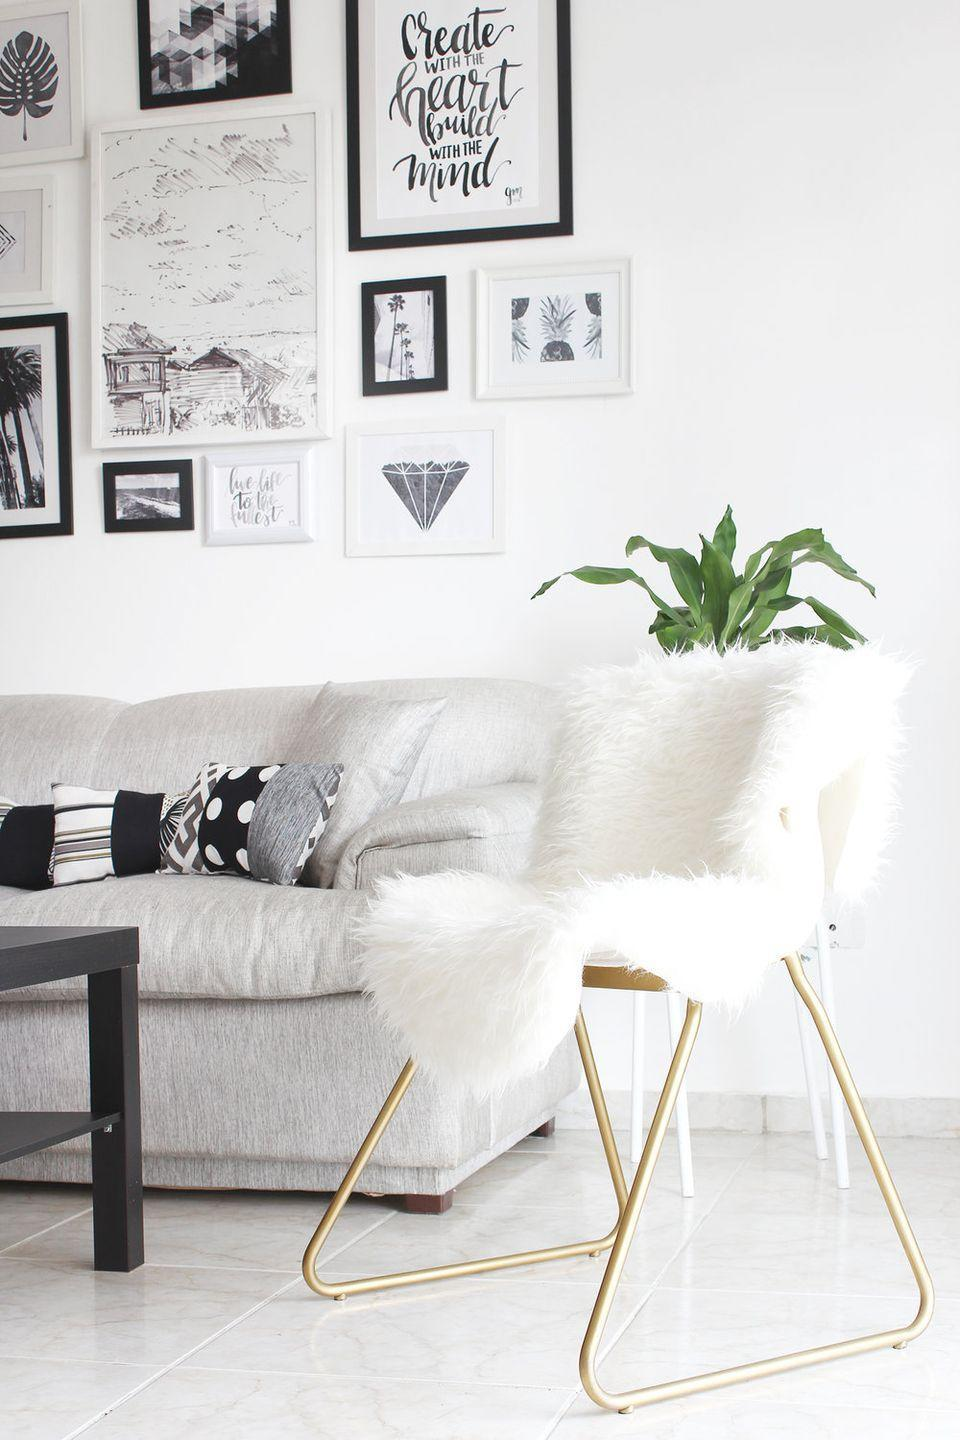 """<p>Even something as simple as spray painting the silver to gold and throwing on some cute faux fur, like Nathalia of The Key Item, it looks instantly more expensive and chic!</p><p>See more at <a href=""""https://www.thekeyitem.com/blog/es/2016/09/diy-ikea-hack-silla-glamurosa?rq=ikea"""" rel=""""nofollow noopener"""" target=""""_blank"""" data-ylk=""""slk:The Key Item"""" class=""""link rapid-noclick-resp"""">The Key Item</a>.</p><p><a class=""""link rapid-noclick-resp"""" href=""""https://go.redirectingat.com?id=74968X1596630&url=https%3A%2F%2Fwww.ikea.com%2Fus%2Fen%2Fp%2Frens-sheepskin-white-70026822%2F&sref=https%3A%2F%2Fwww.bestproducts.com%2Fhome%2Fg29514474%2Fbest-ikea-hacks%2F"""" rel=""""nofollow noopener"""" target=""""_blank"""" data-ylk=""""slk:BUY NOW"""">BUY NOW</a> <strong><em>RENS</em></strong><strong><em> Rug, $30, ikea.com</em></strong></p>"""